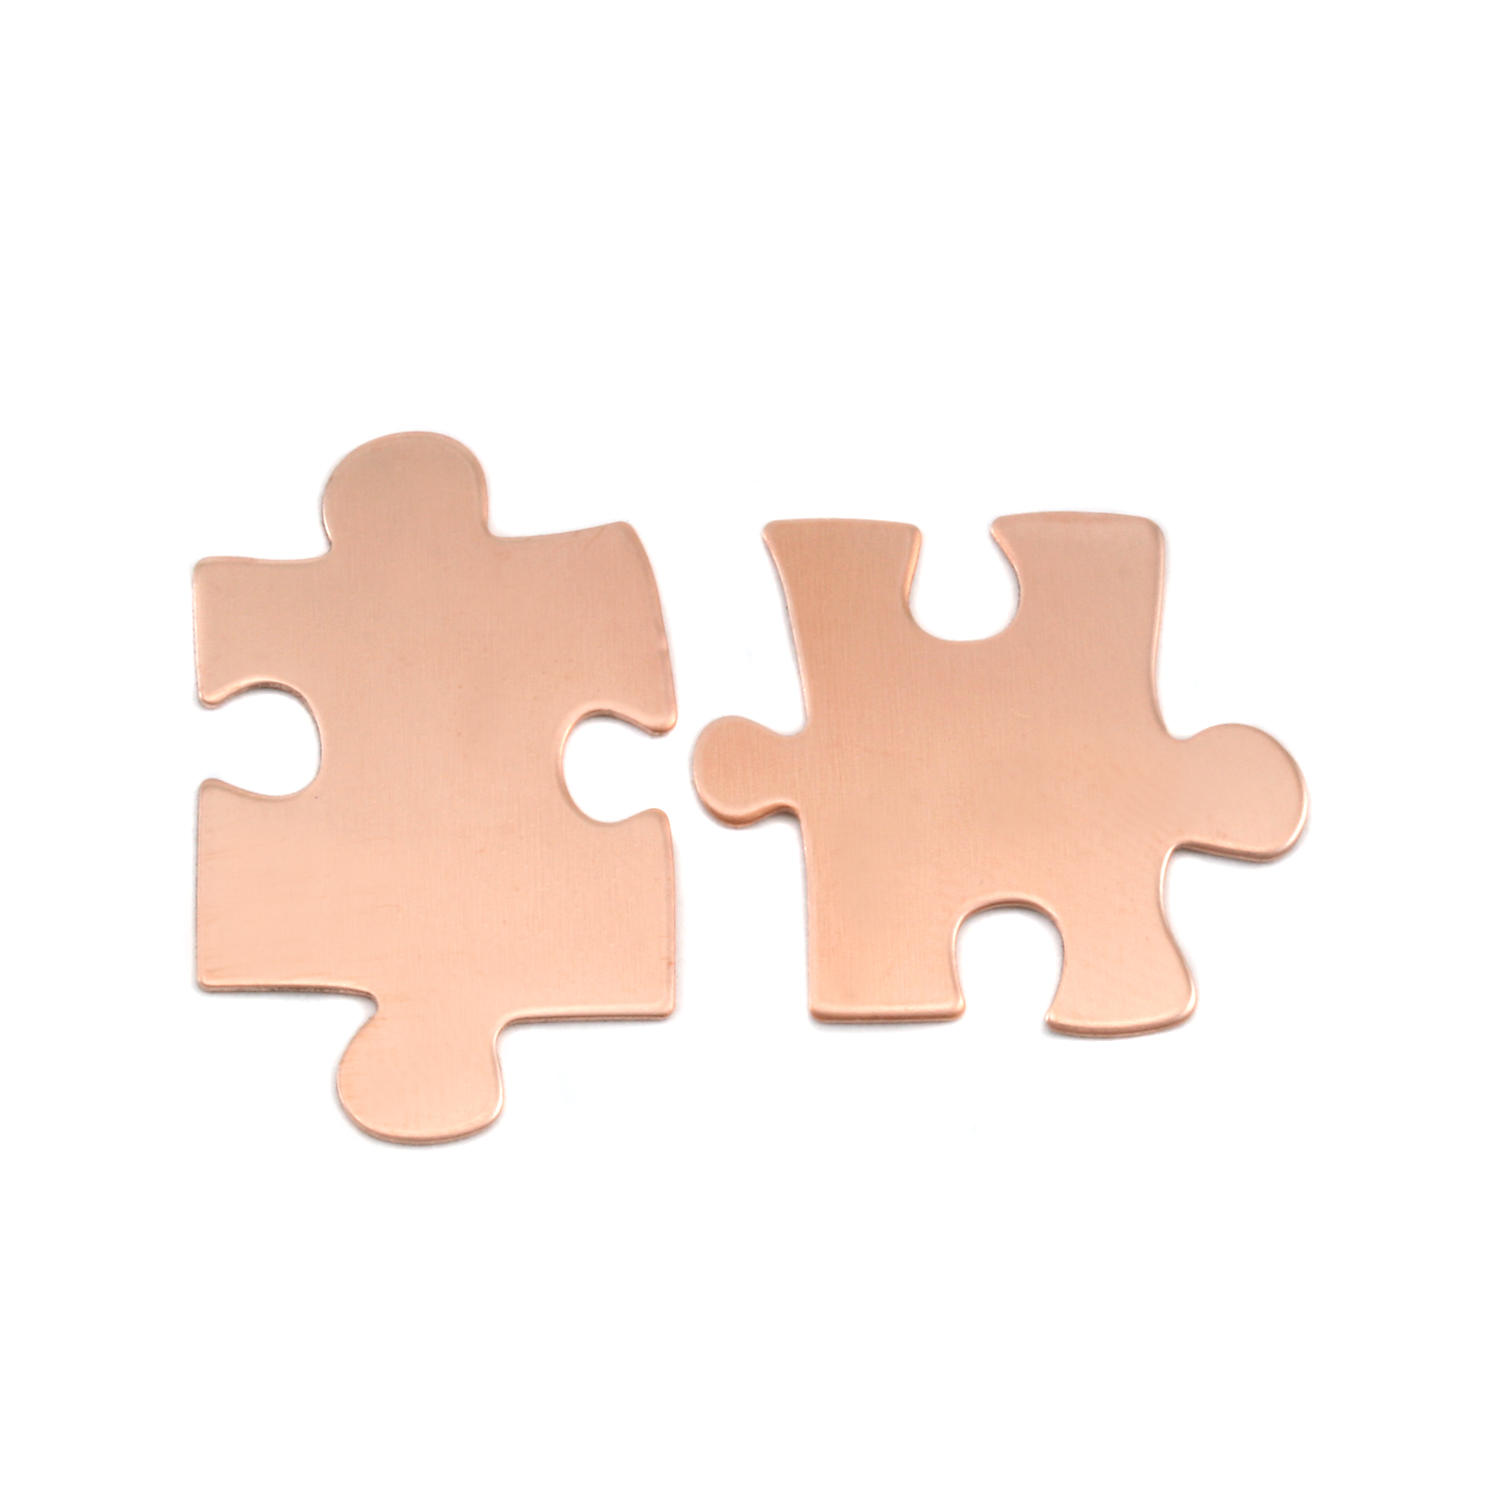 Copper Paired Puzzle Pieces, 24g